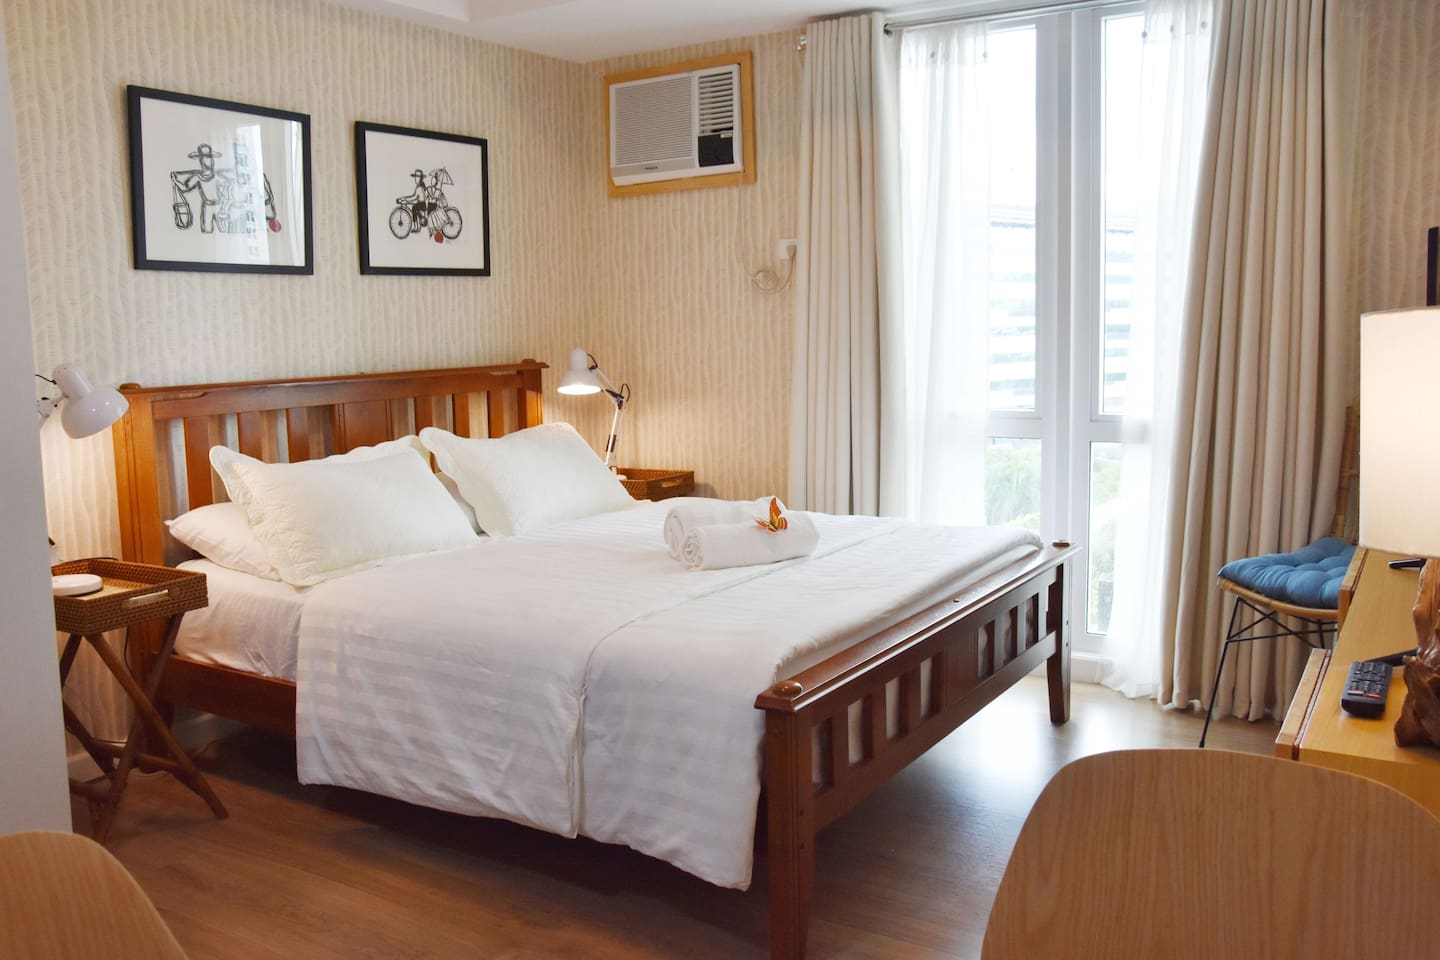 Comfy queen size bed overlooking the garden and play area.